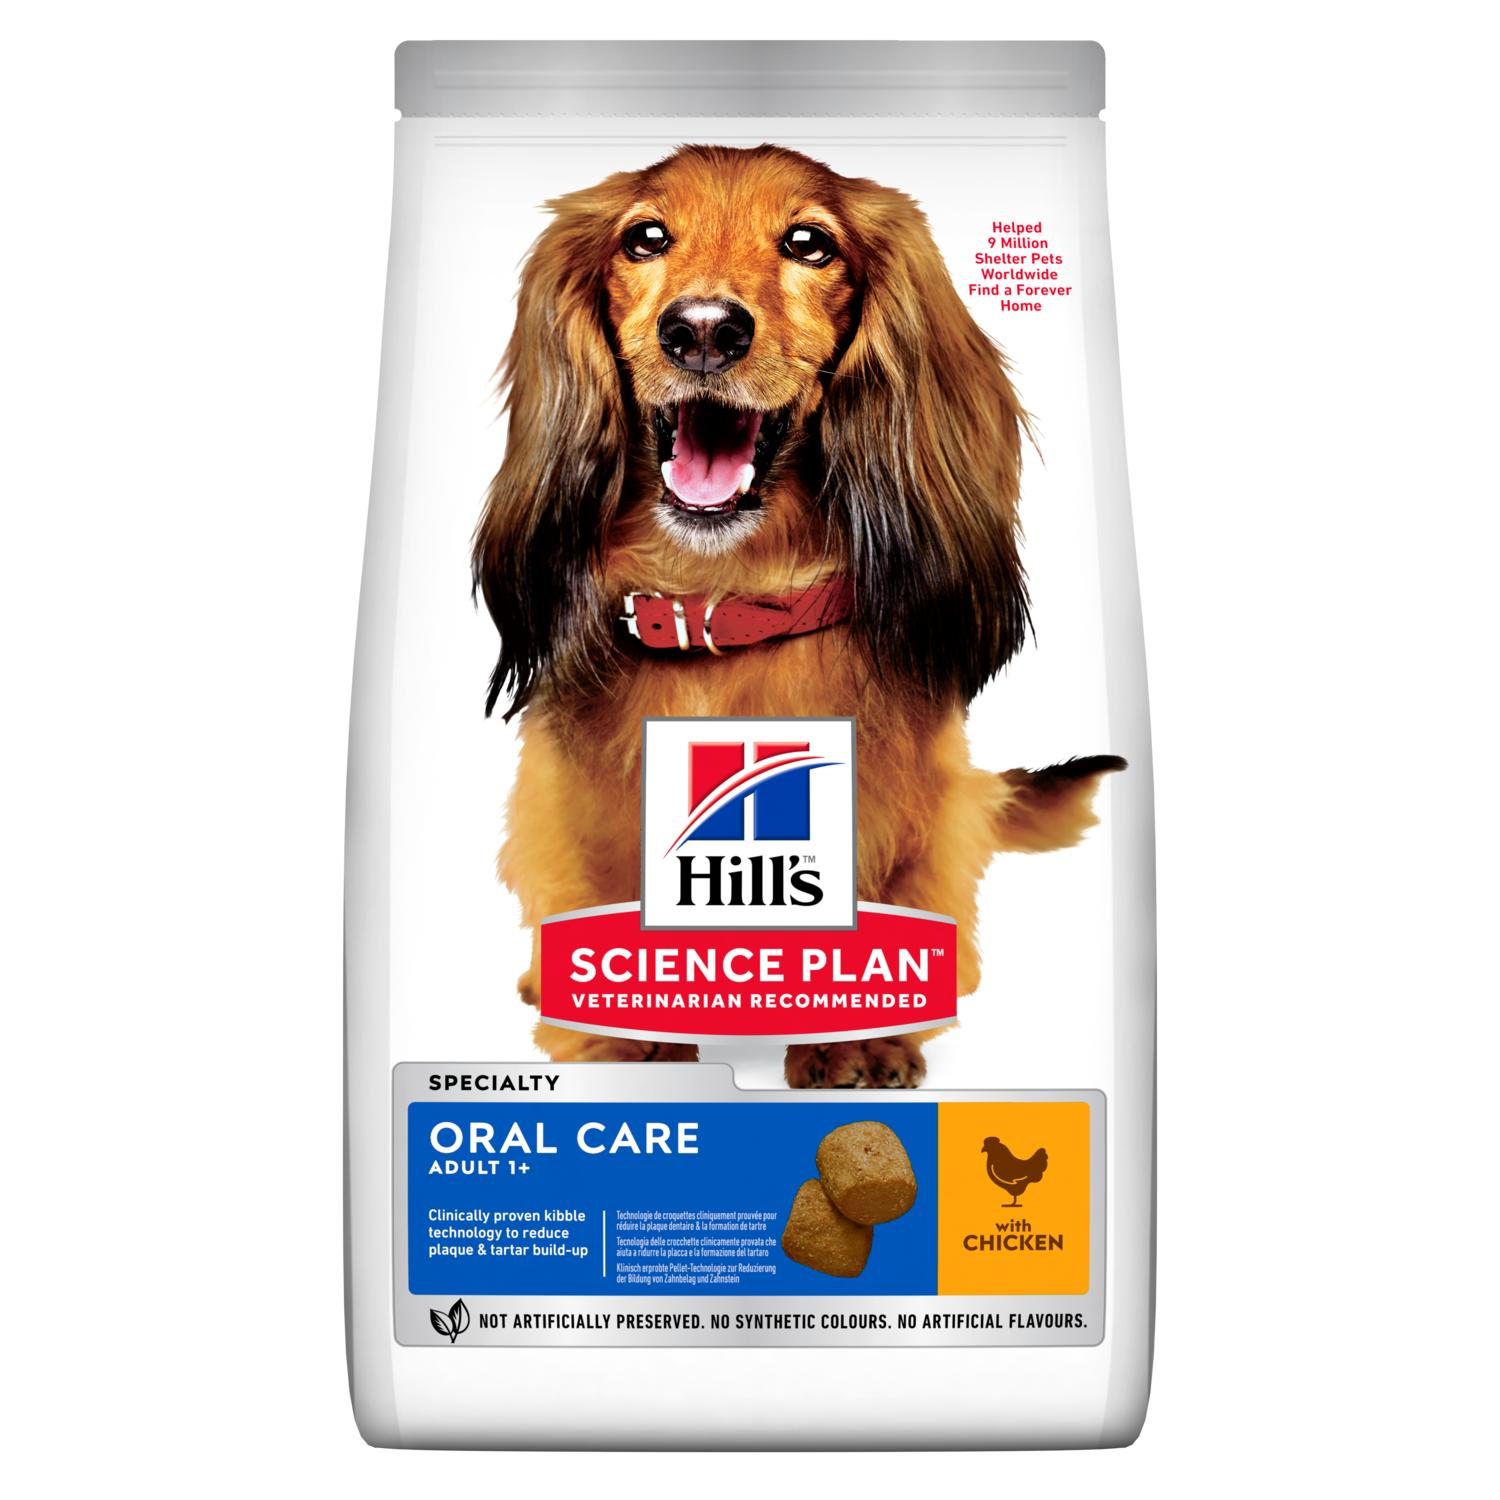 GUIDE TO DOG'S ORAL HEALTH